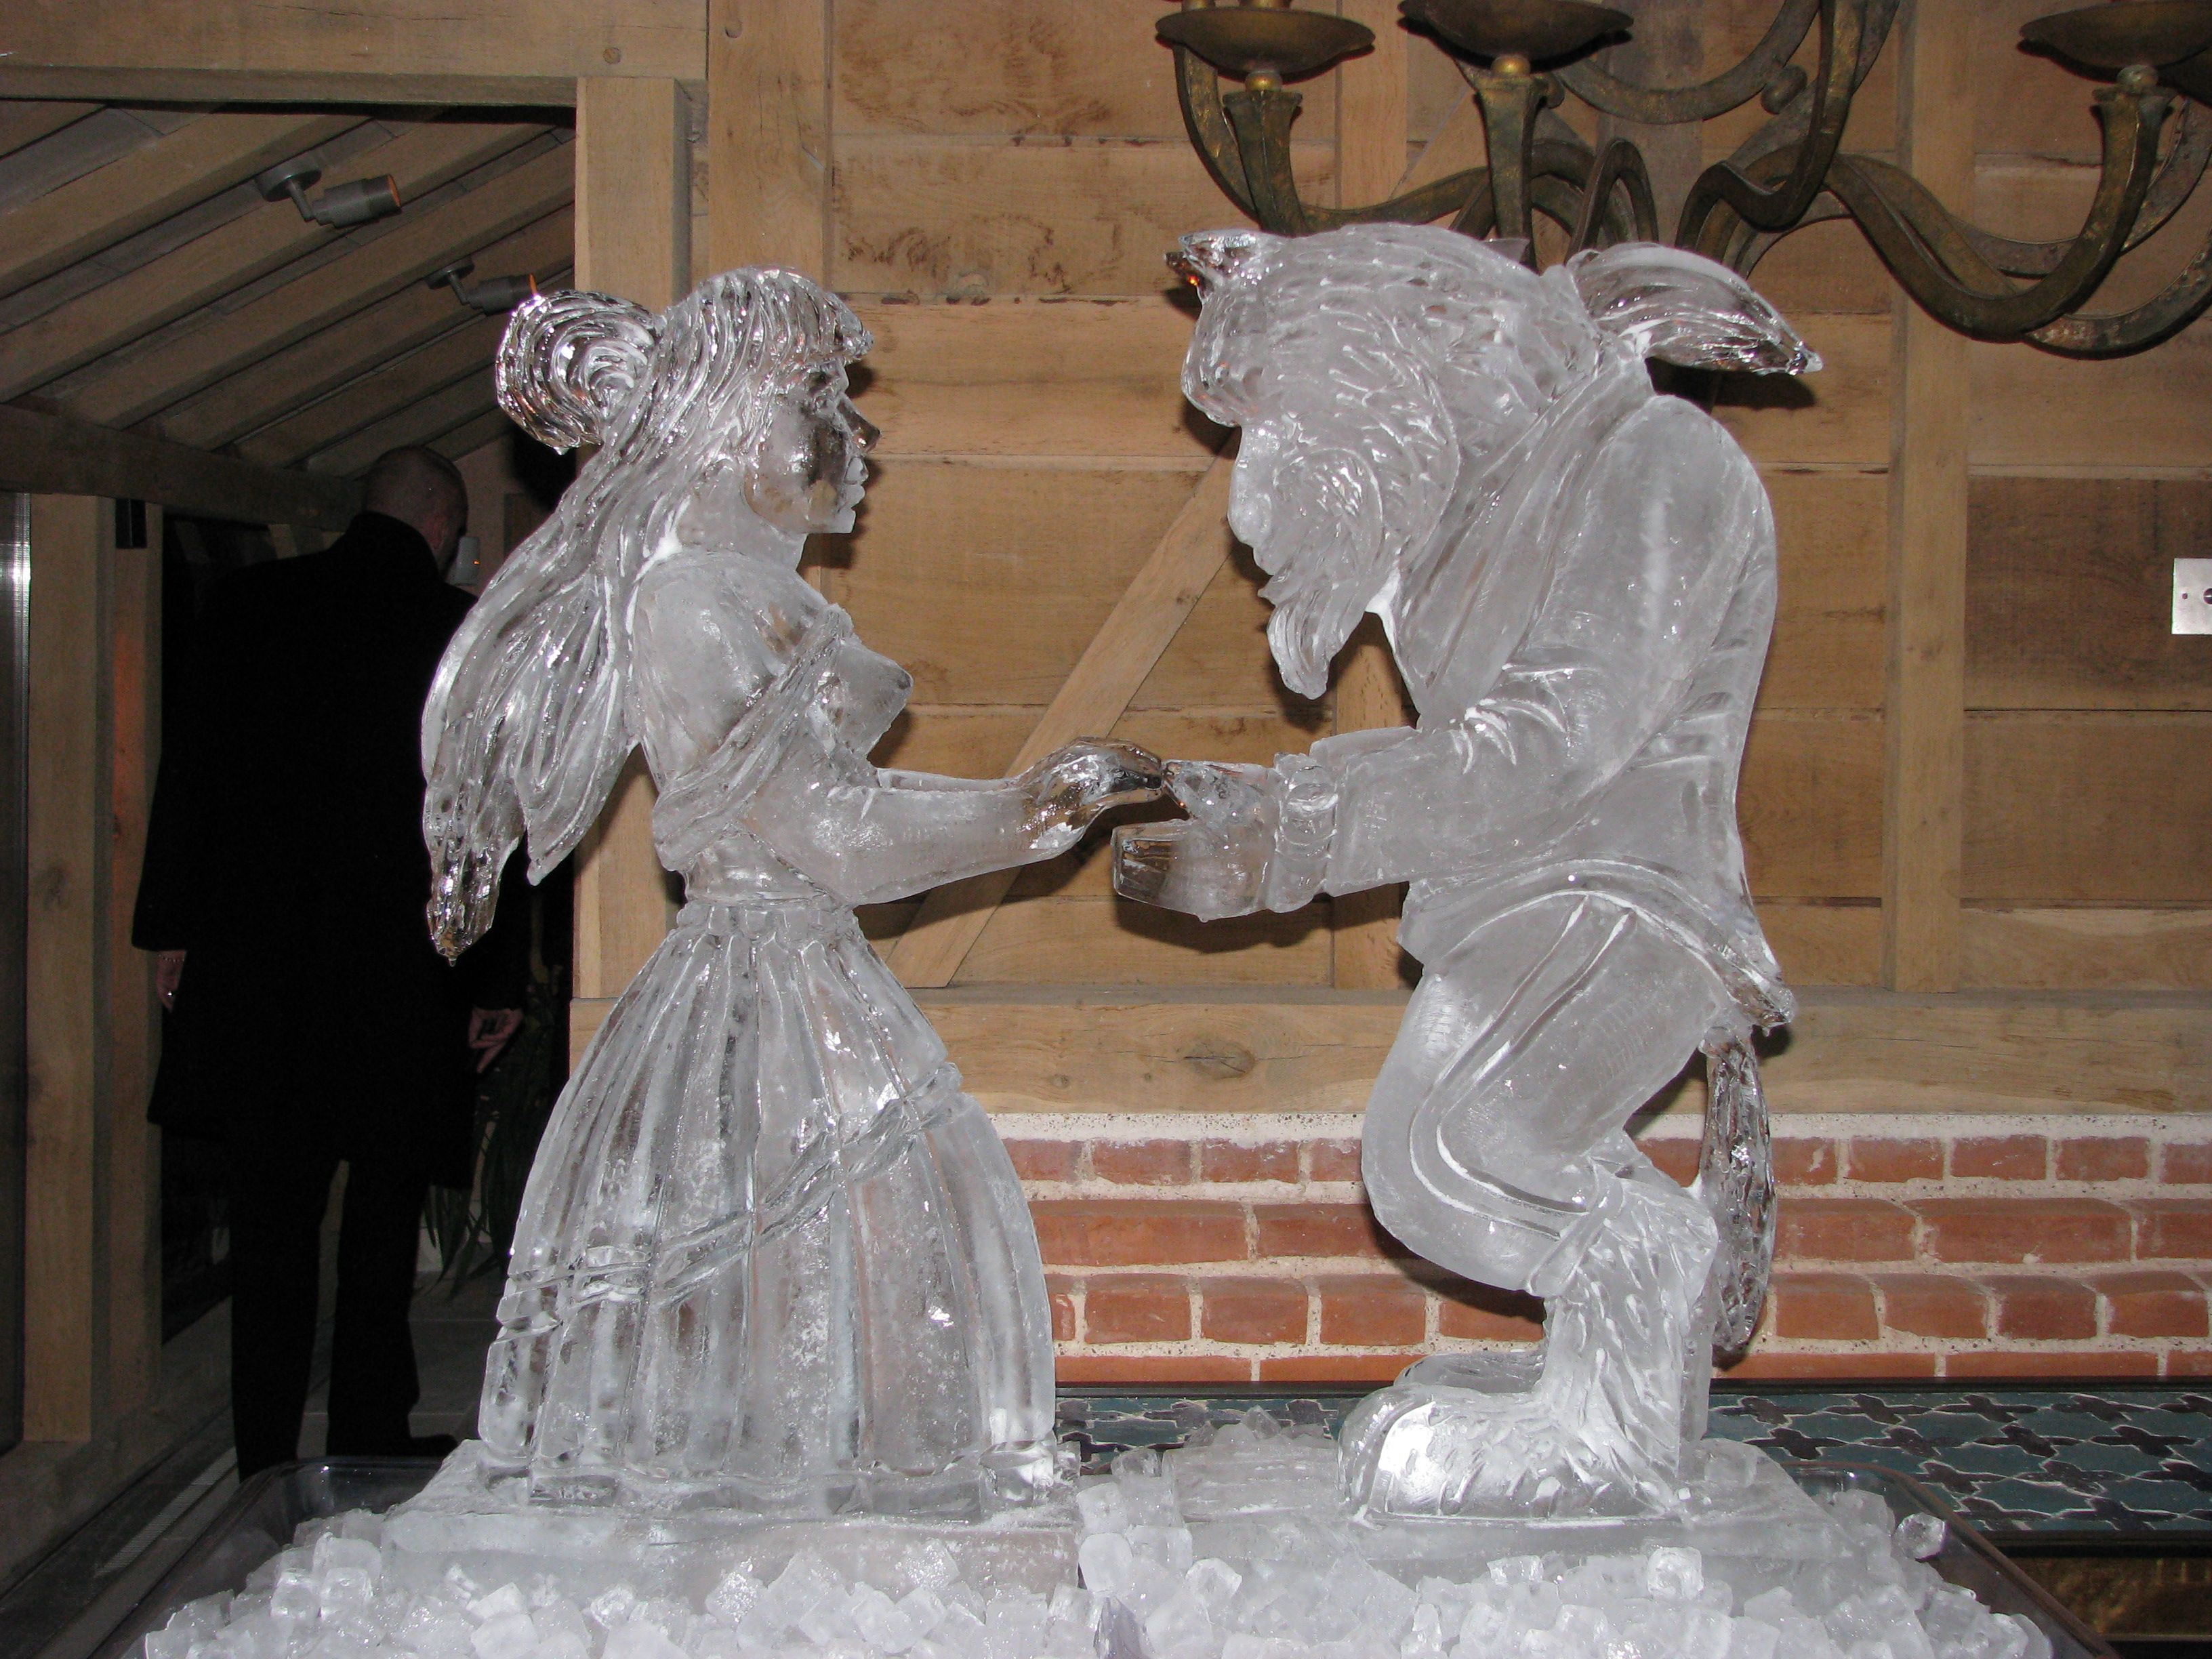 Set Your Wedding Reception Apart From Others By Adding Ice Sculptures Or Table Centre Pieces To Decorations